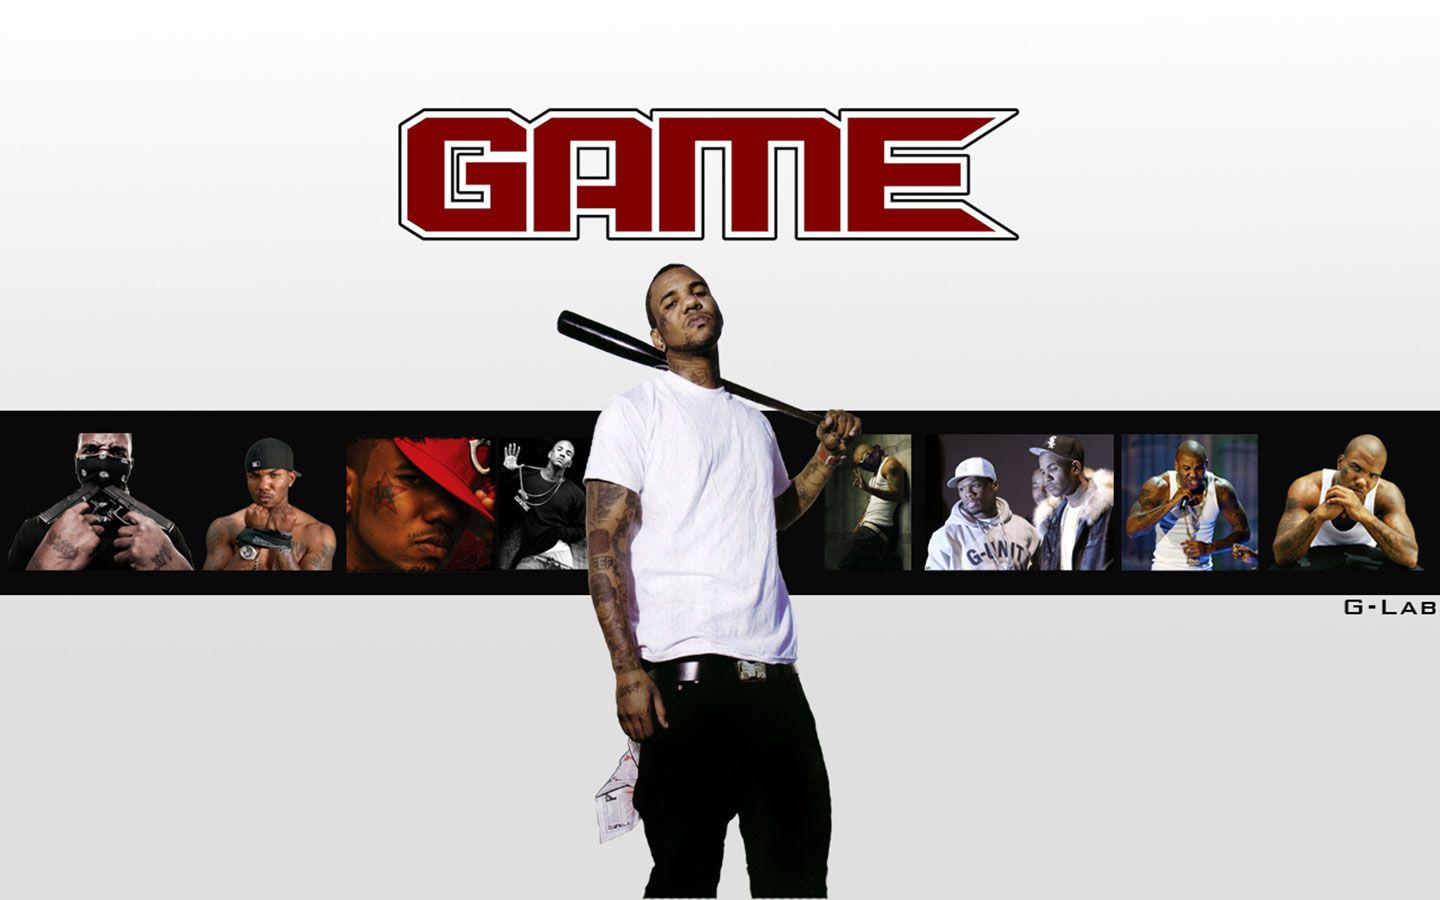 1440x900 - The Game Rapper Wallpaper 2018 12